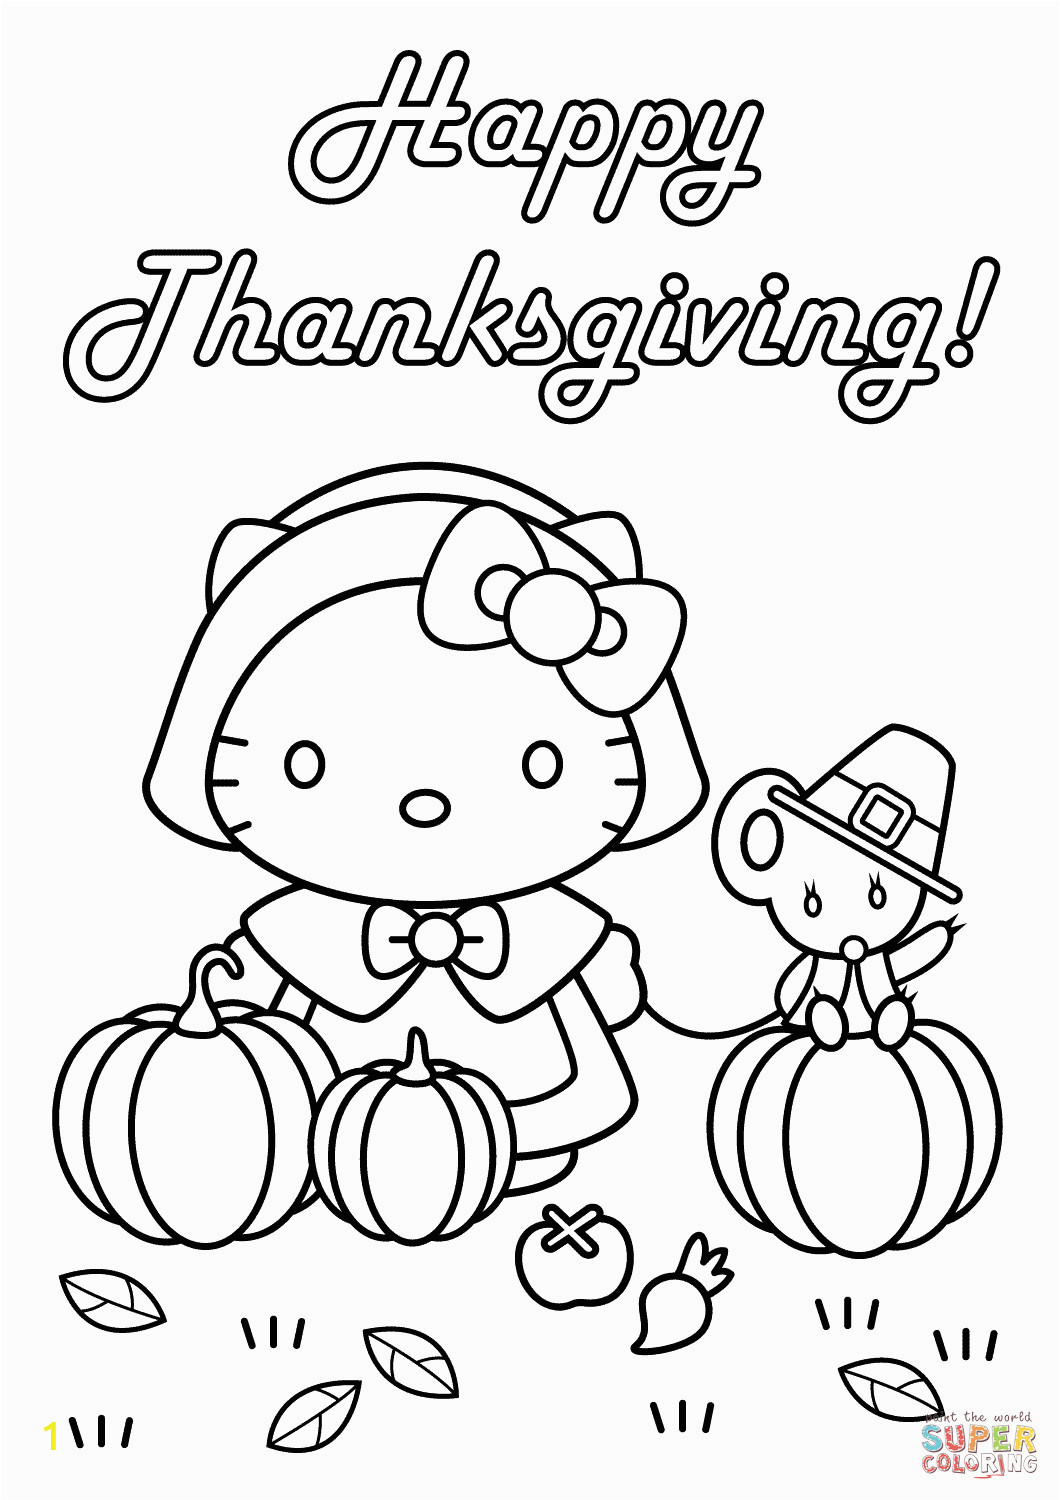 printable coloring pictures for pre school kids page 51 most terrific hello kitty happyng coloring page free cute of coloring pictures for pre school kids page